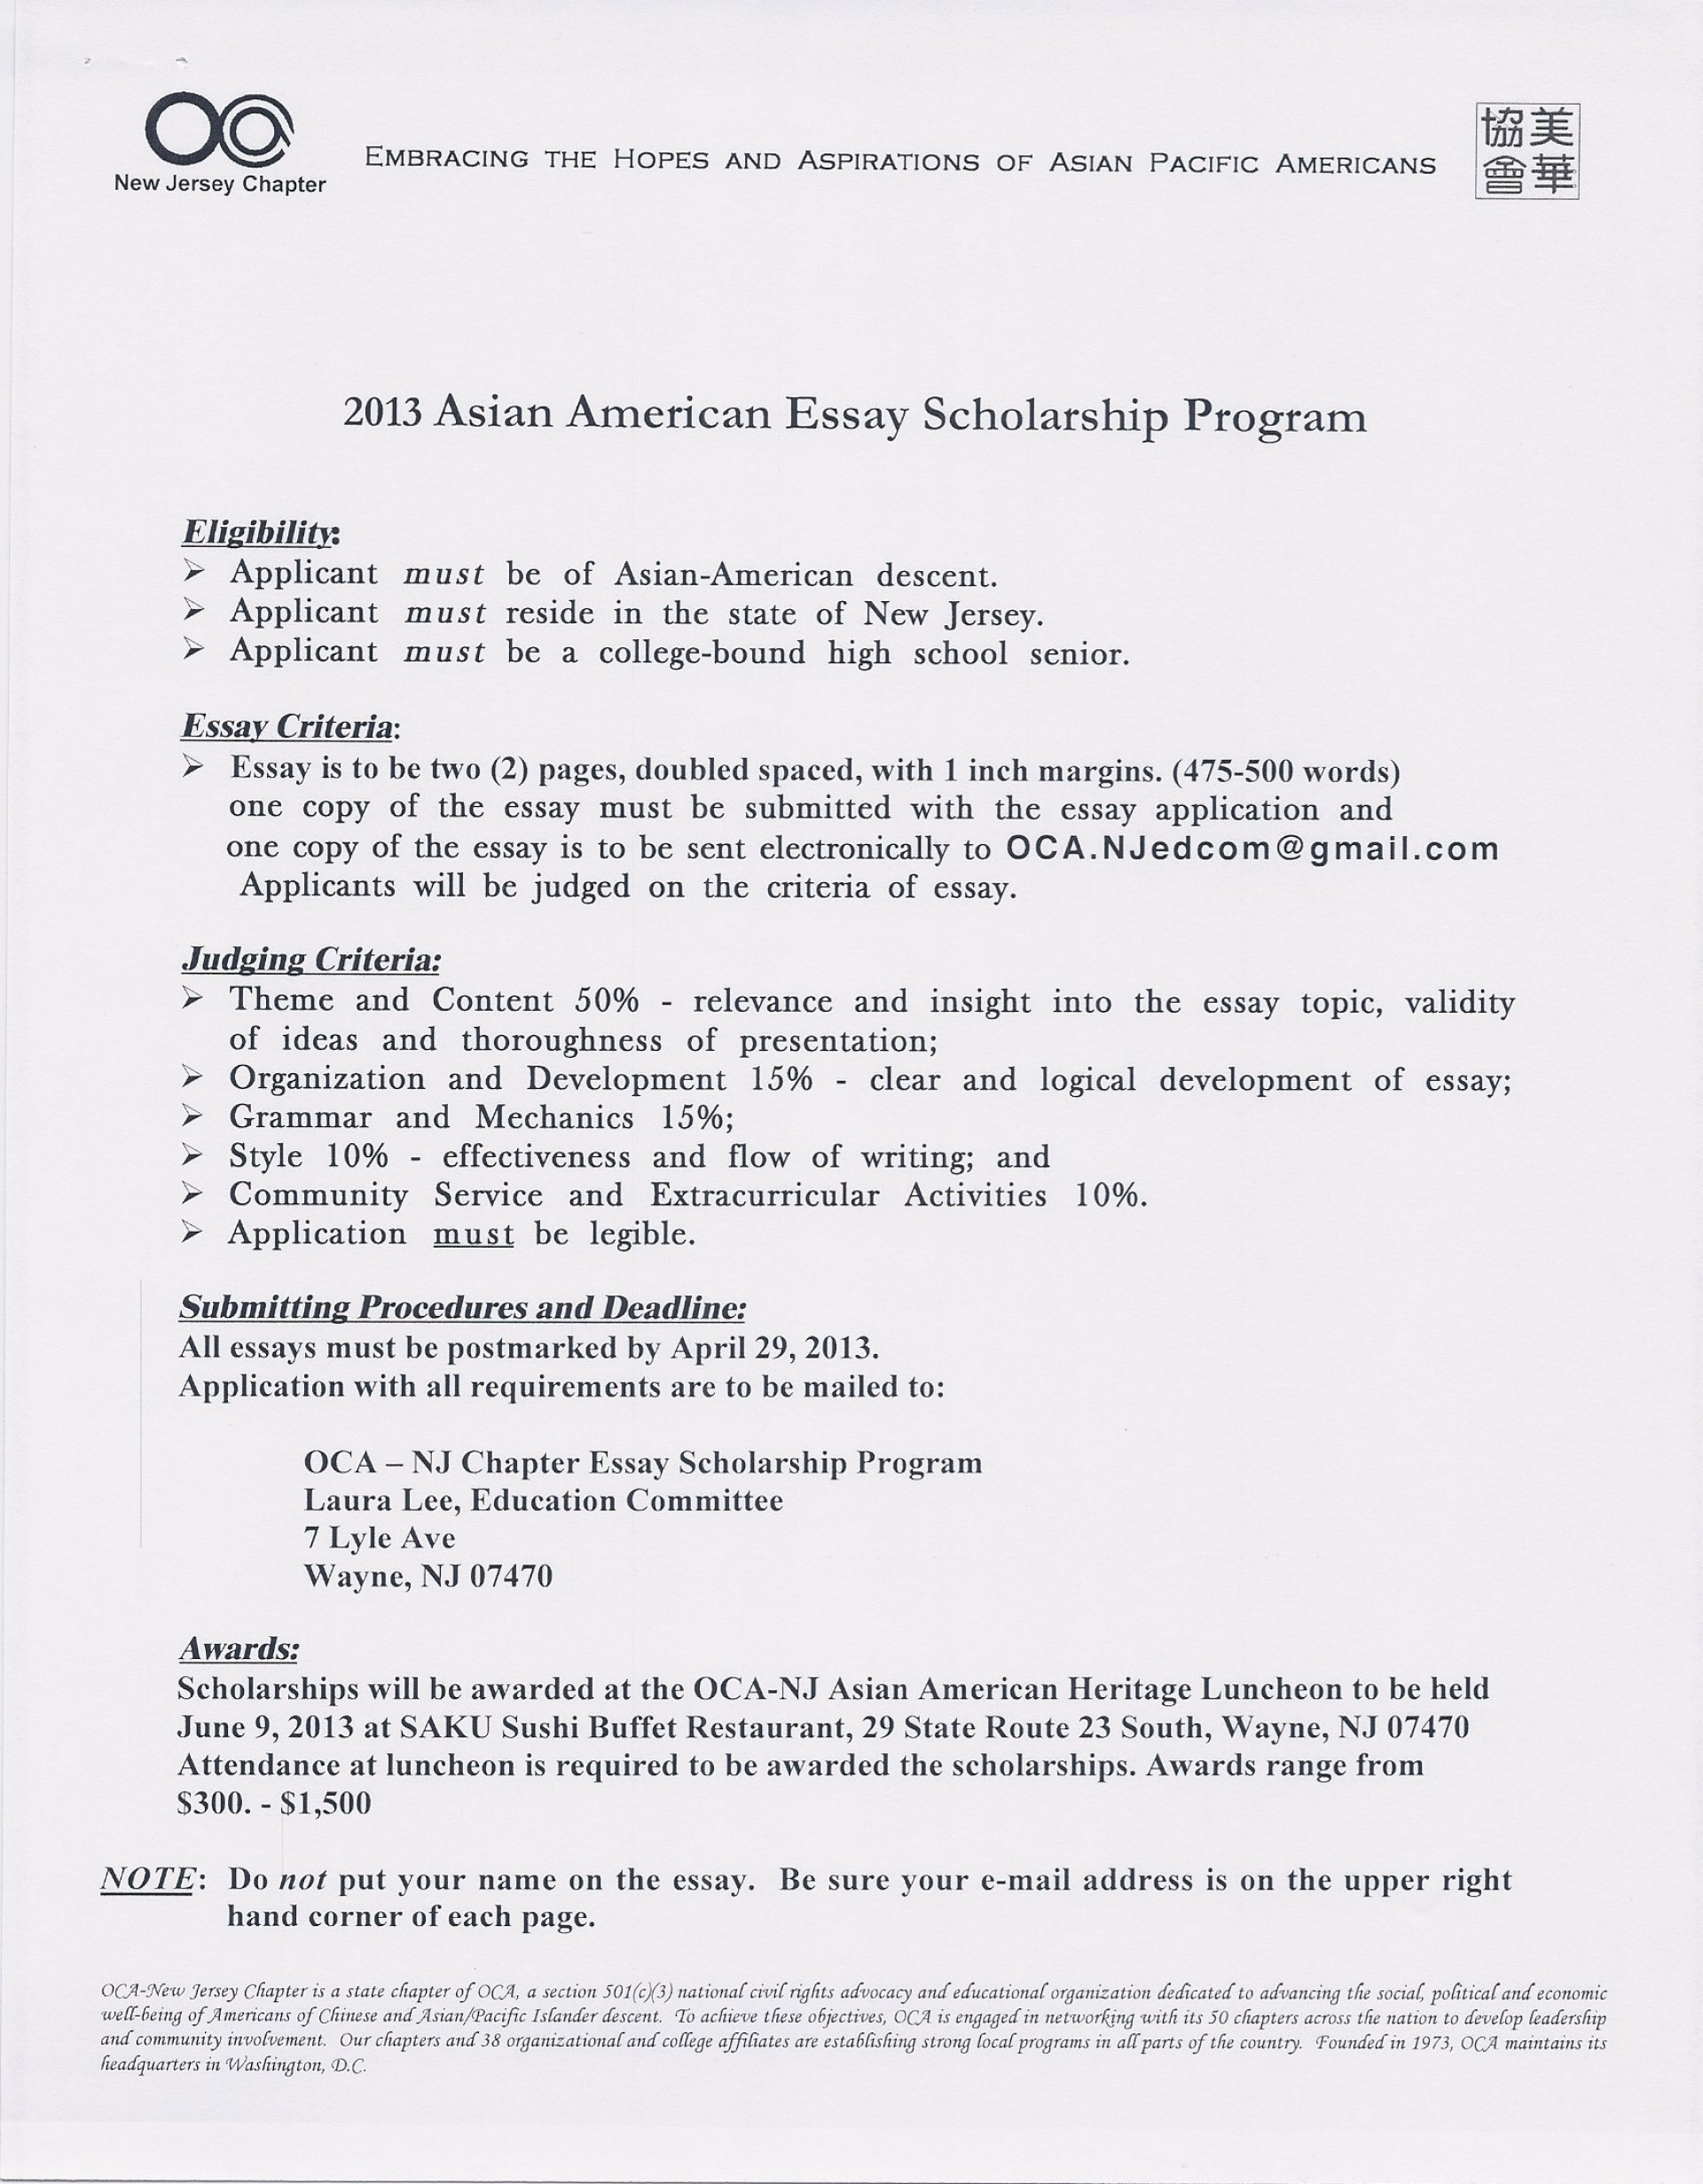 019 Scholarships With Essays Essay Example Singular Without Writing For High School Juniors Class Of 2020 No 2019 1920